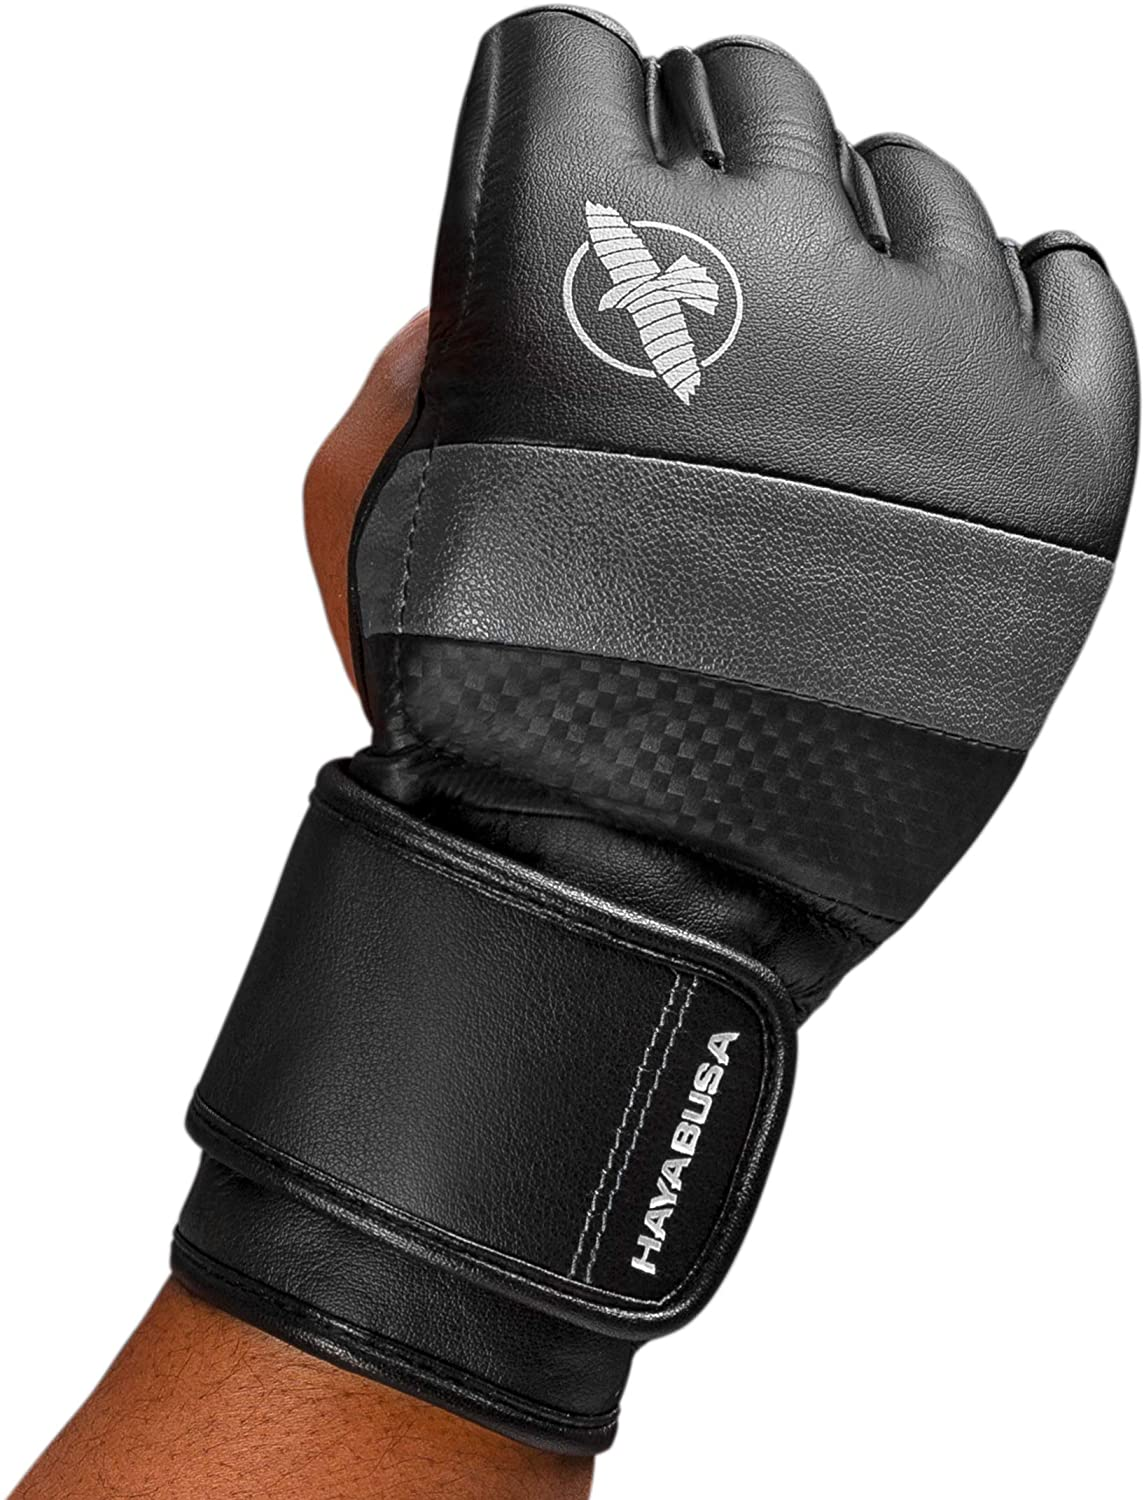 4oz Boxing Bag Gloves Hayabusa T3 MMA Training Kickboxing